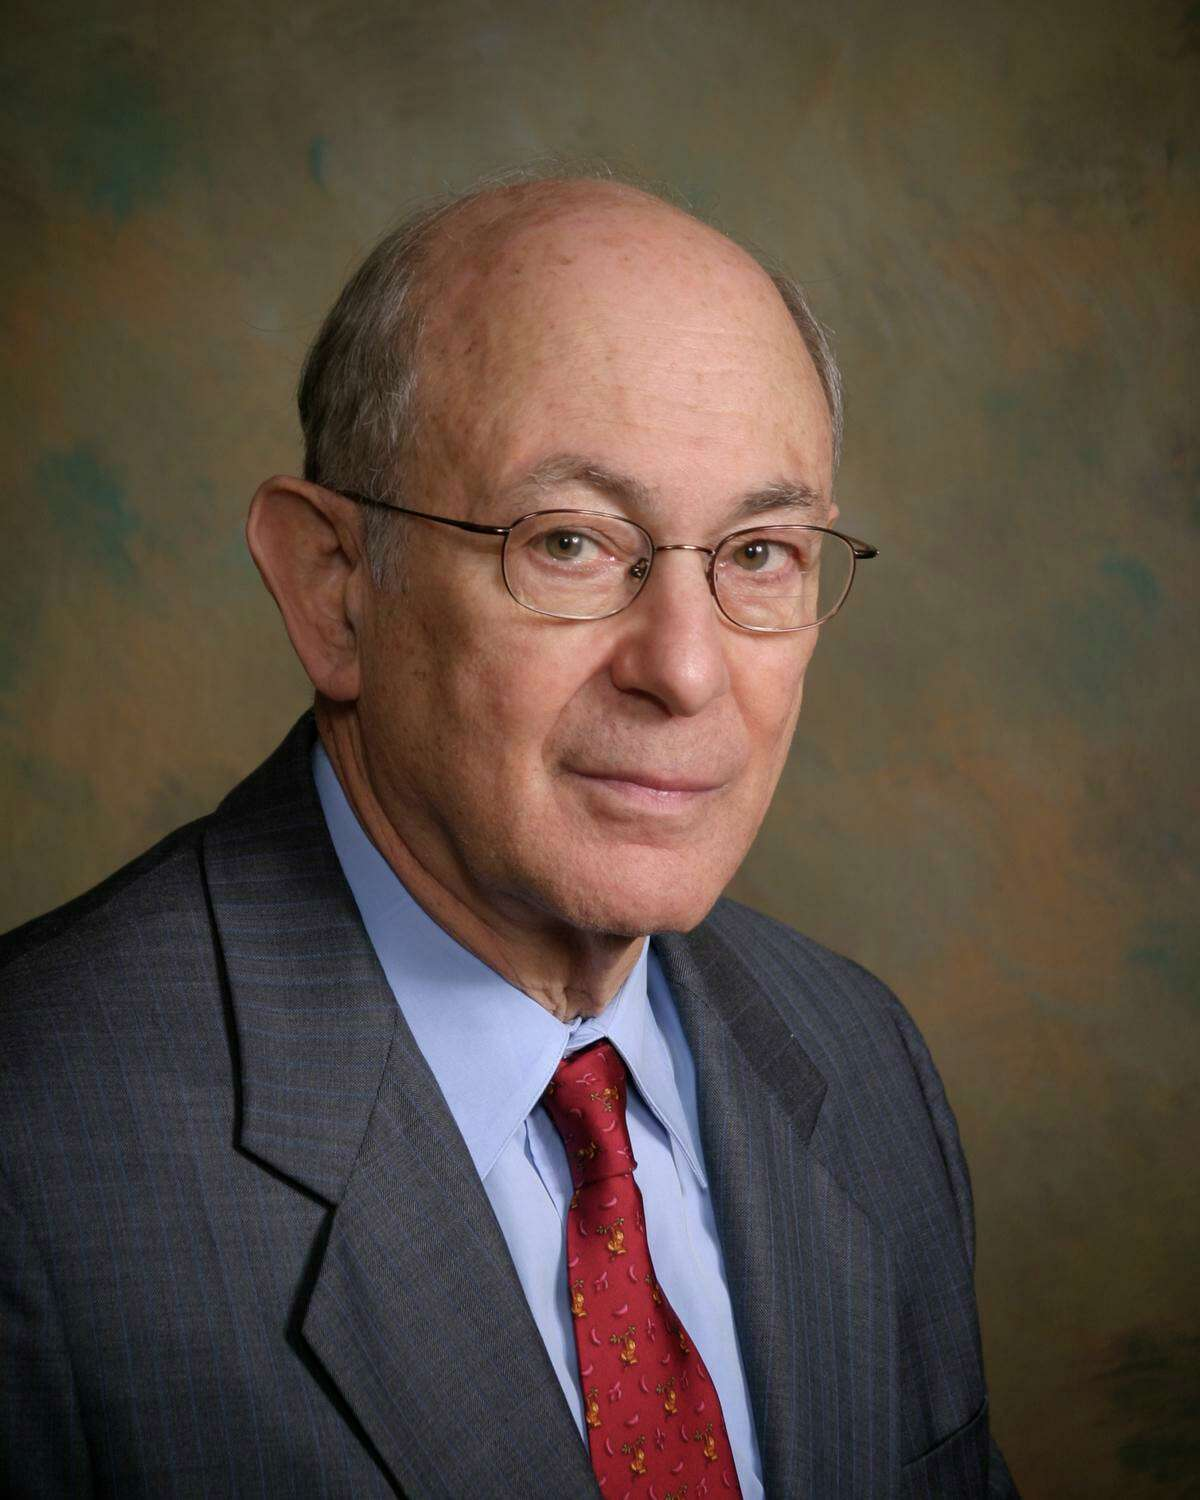 This is a photo of Dr. Robert Grossman, a neurologist who examined President John F. Kennedy's head wound at Parkland Memorial Hospital after the shooting. He is now a professor of neurology at Houston Methodist Hospital.